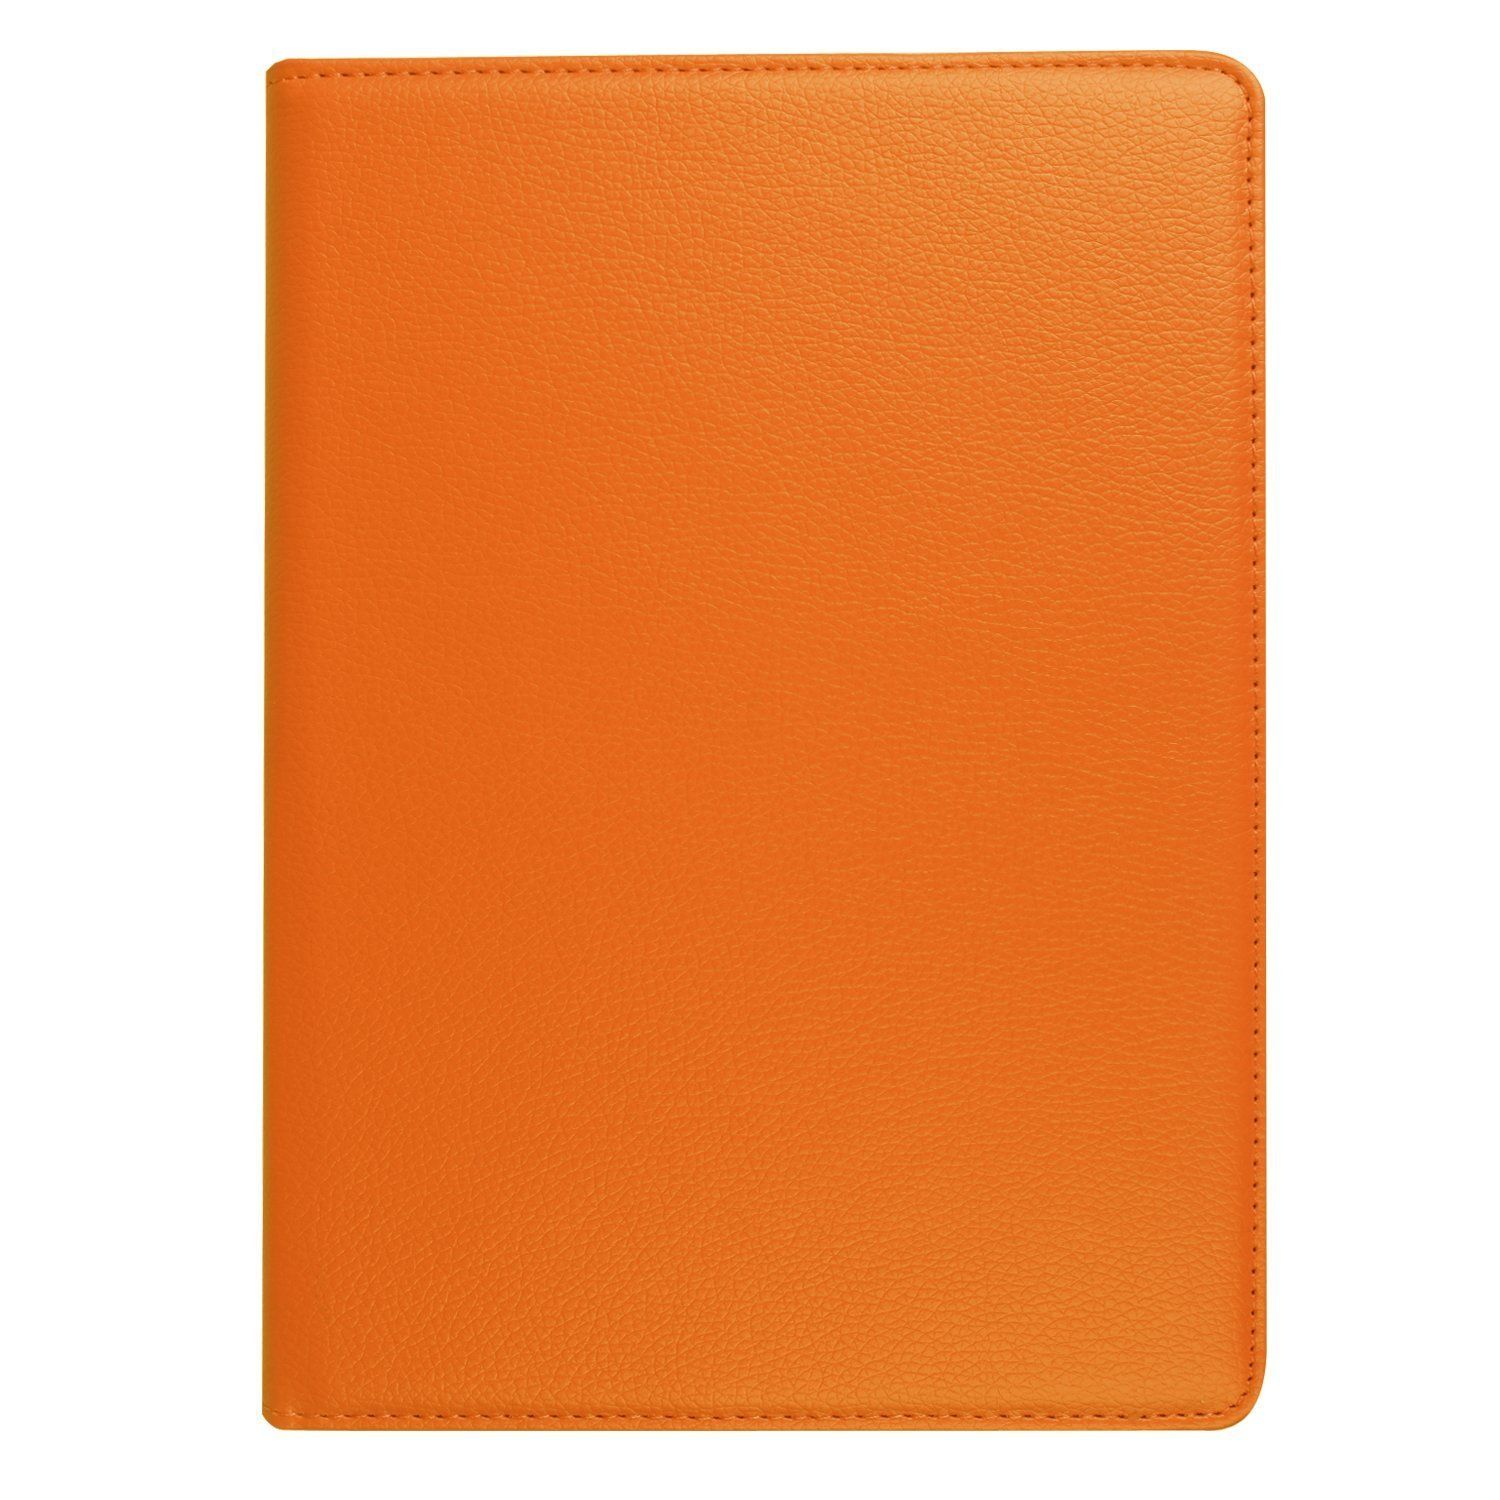 Custodia-per-Apple-iPad-Pro-2017-iPad-Air-3-10-5-Smart-Cover-Case-Custodia-Protettiva miniatura 88